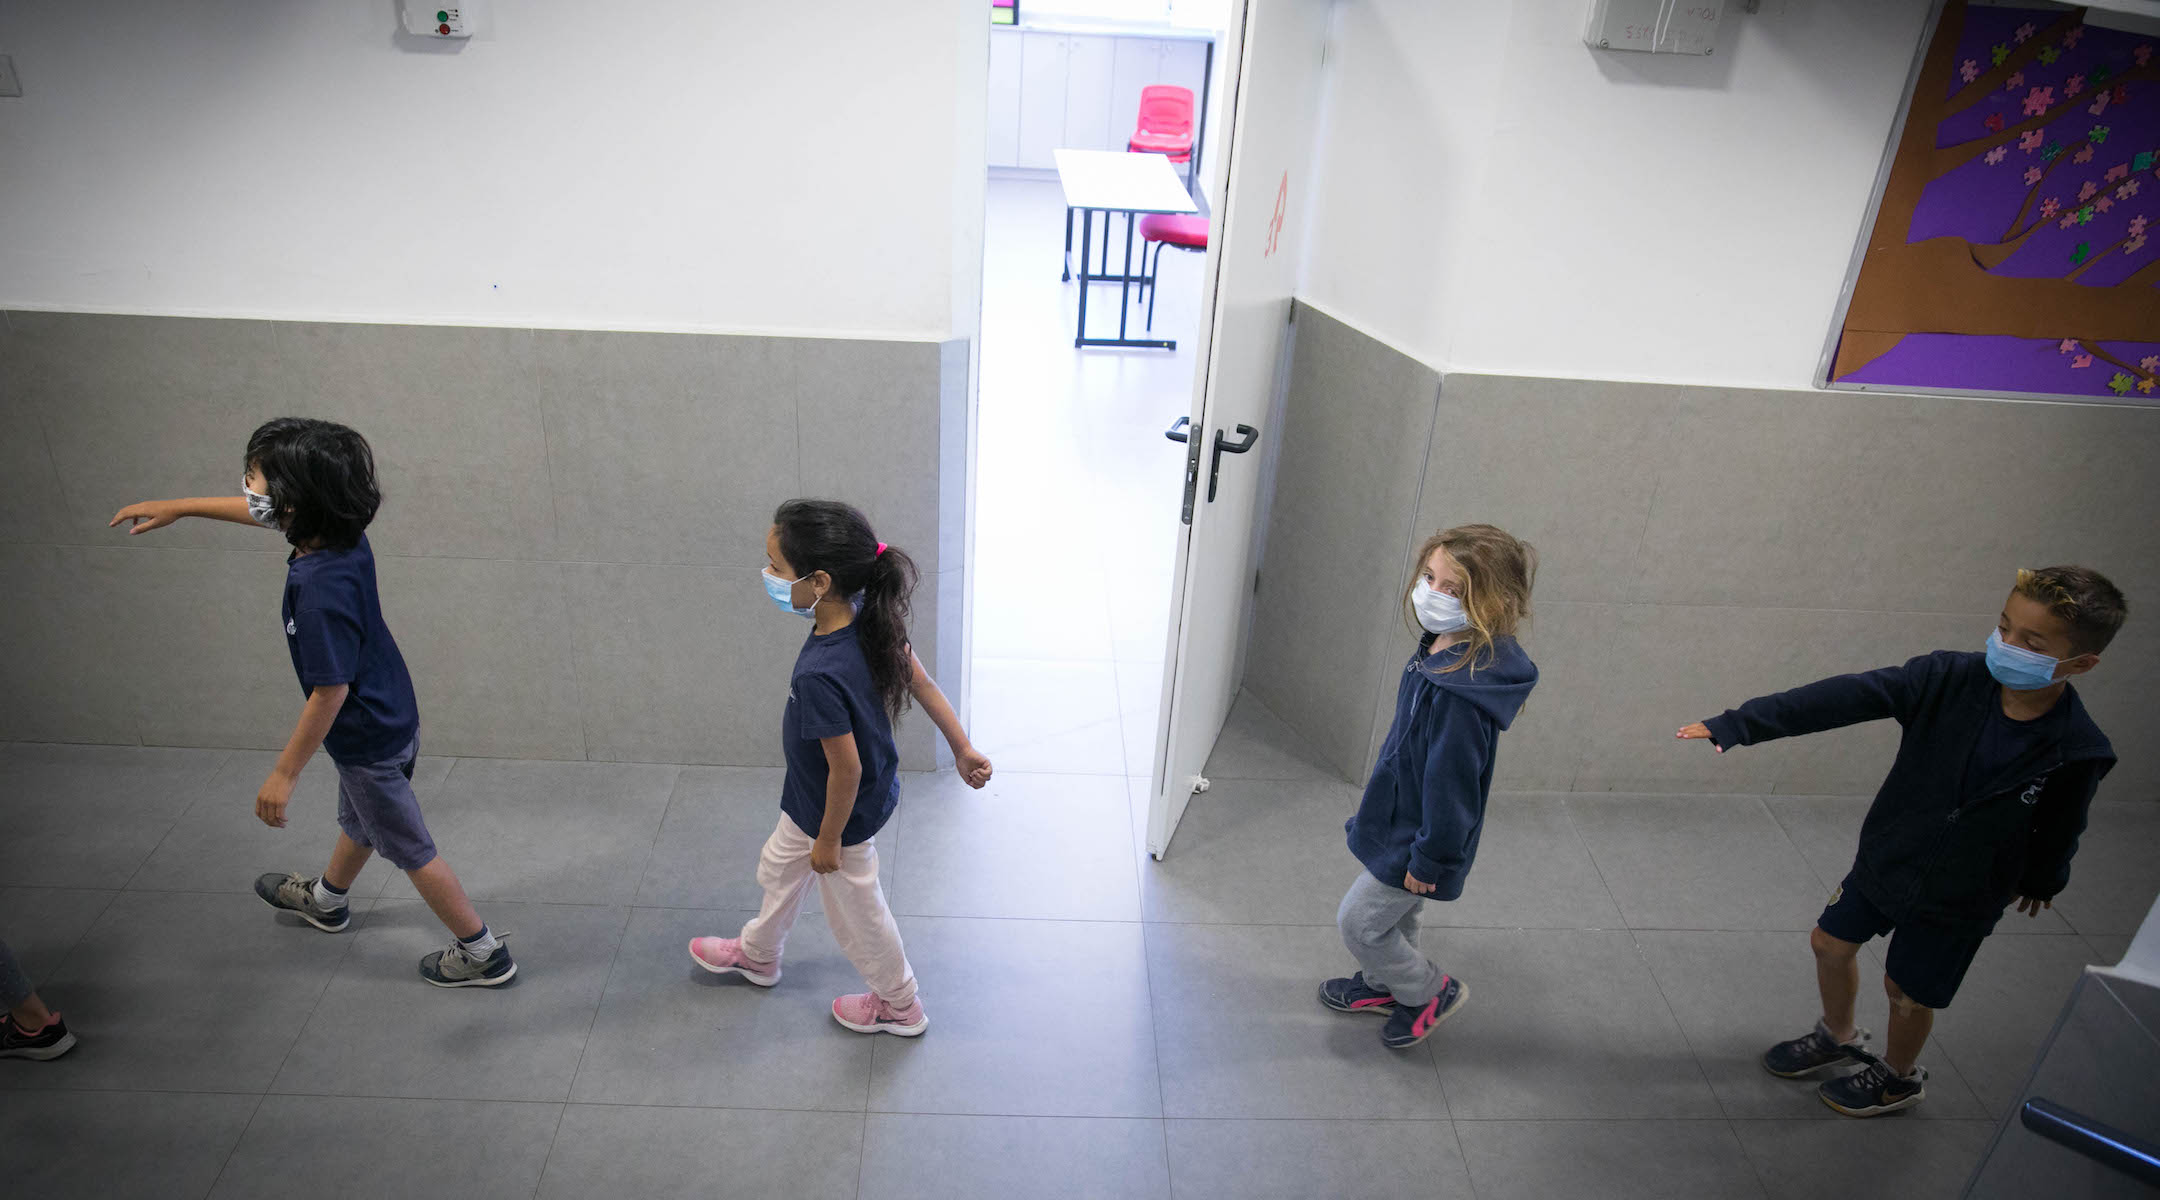 Thousands of students in dozens of Israeli schools sent home to isolation over COVID-19 outbreaks